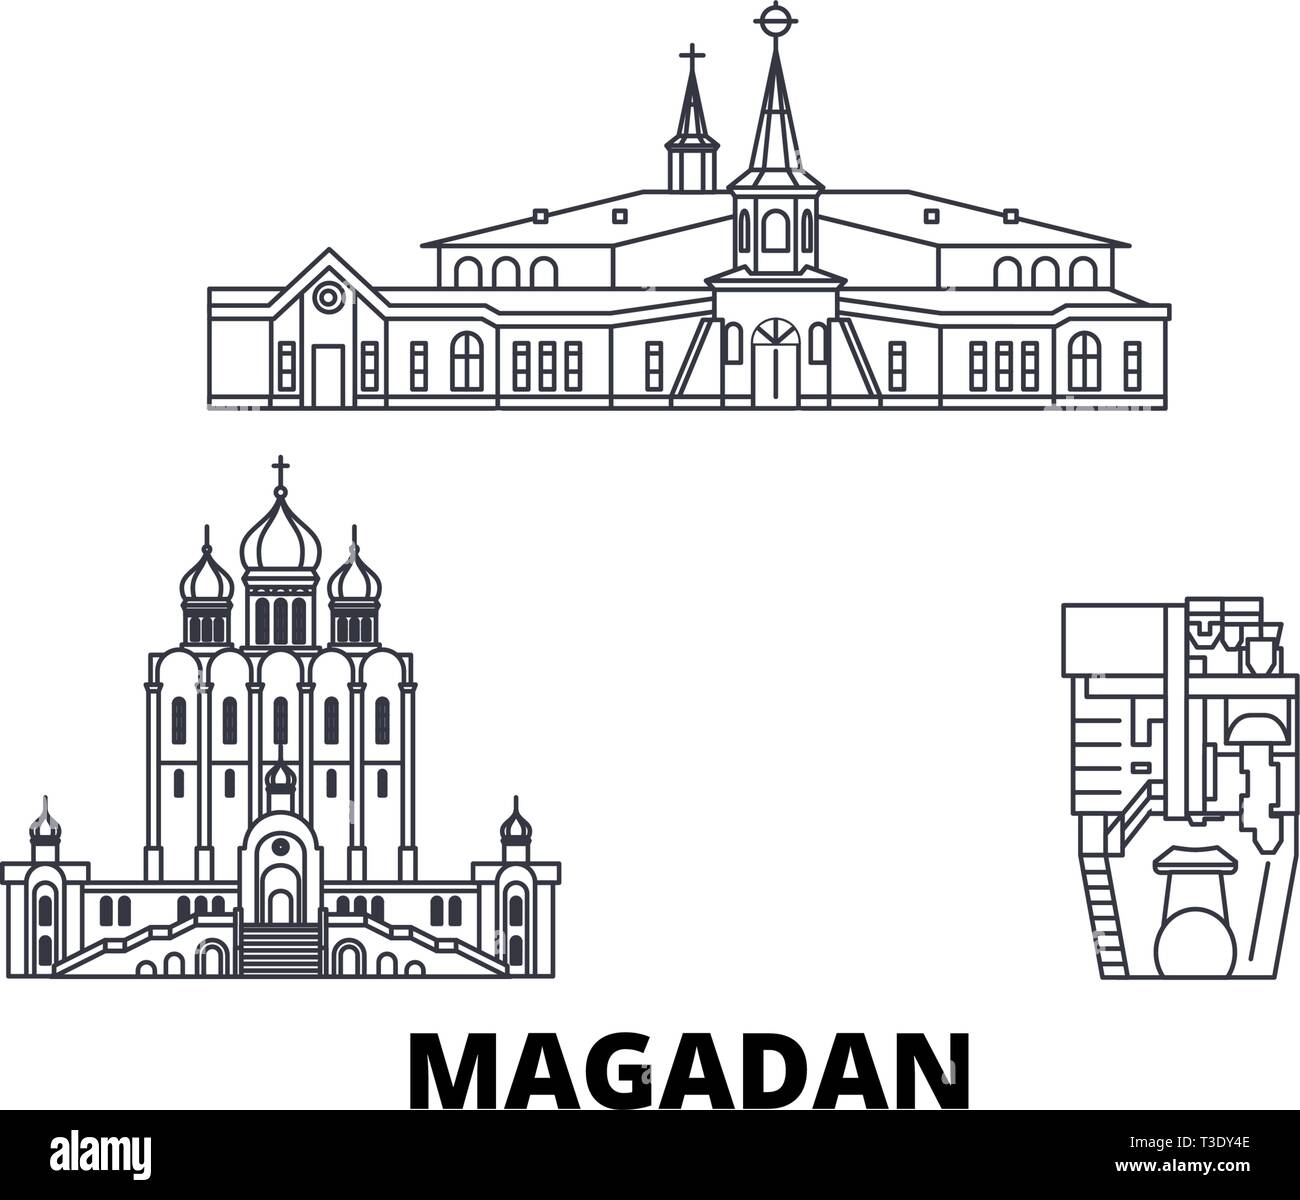 Russia, Magadan line travel skyline set. Russia, Magadan outline city vector illustration, symbol, travel sights, landmarks. - Stock Vector